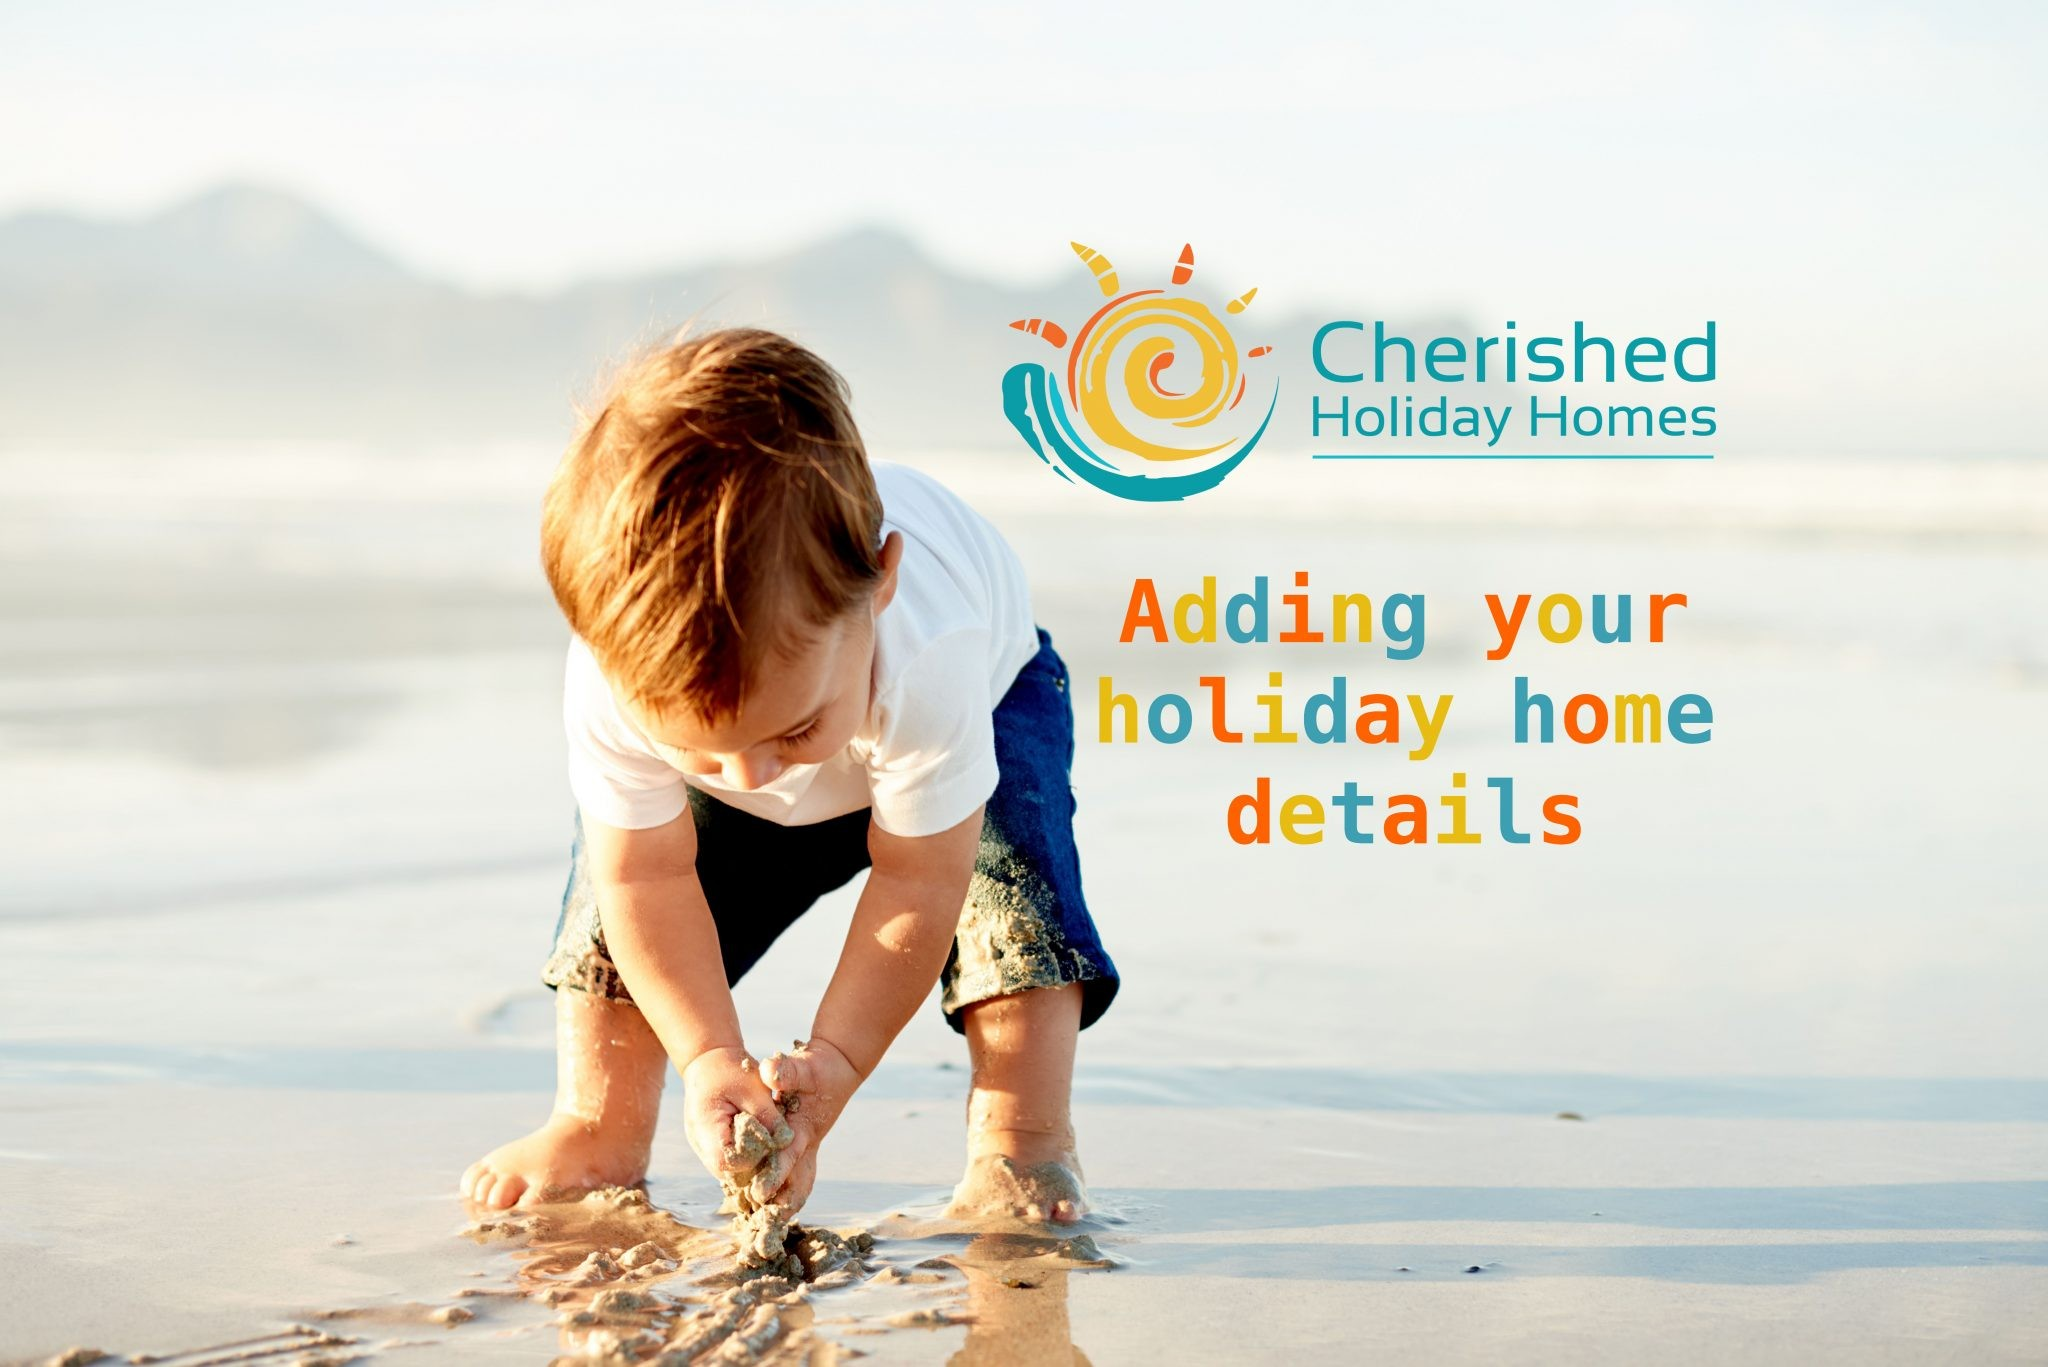 adding your holiday home